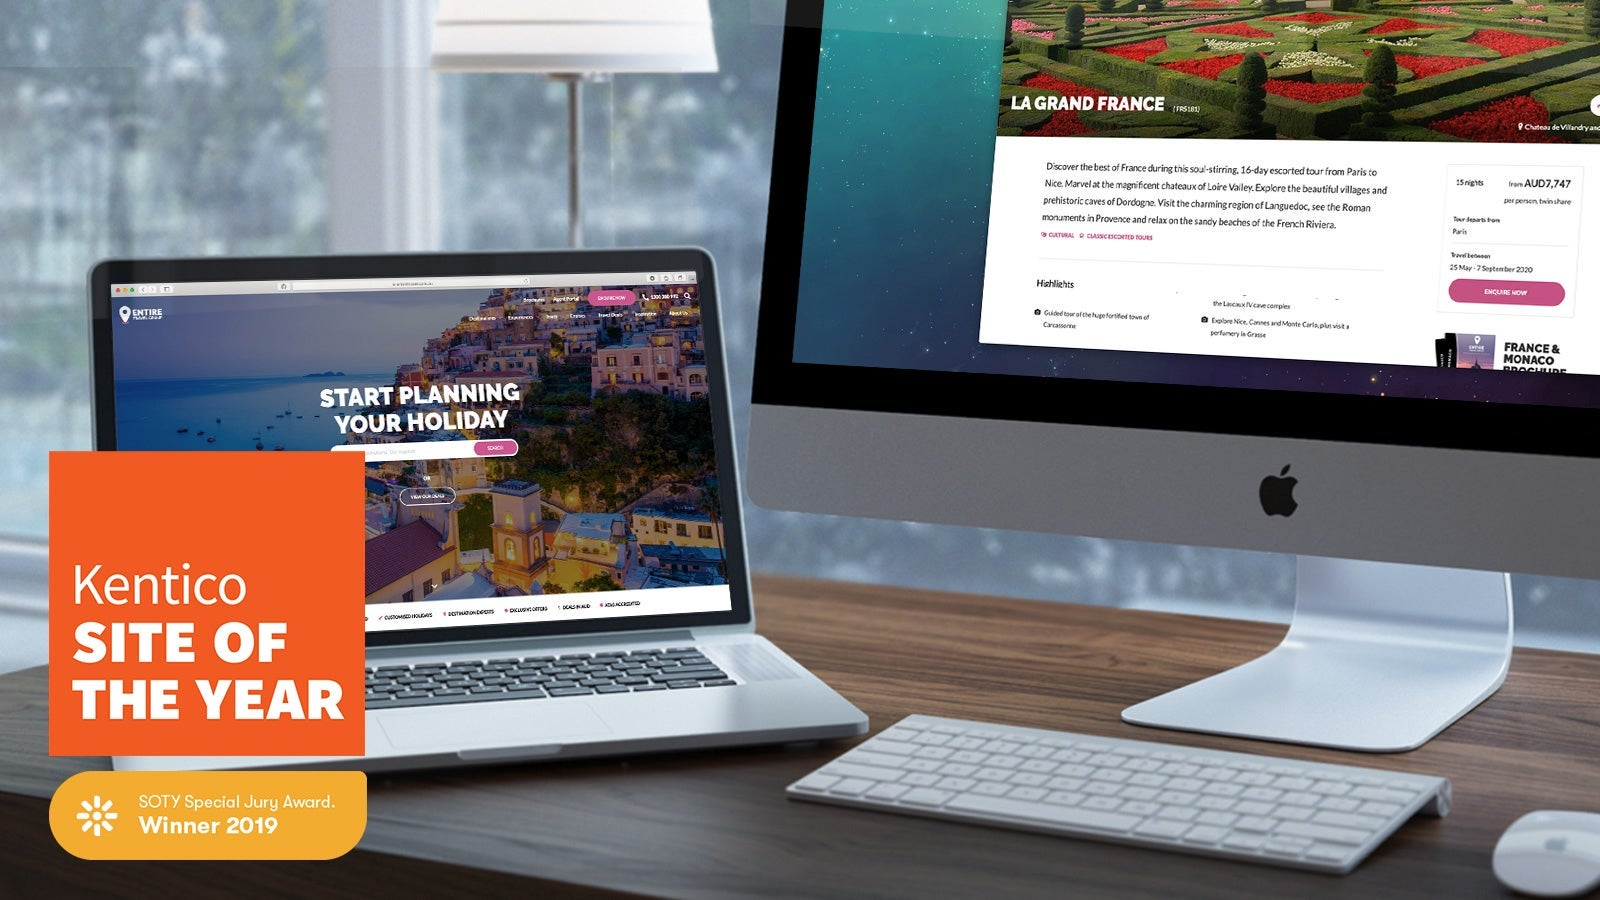 Entire Travel Group | Desktop and laptop showing Entire Travel Group homepage | Devotion